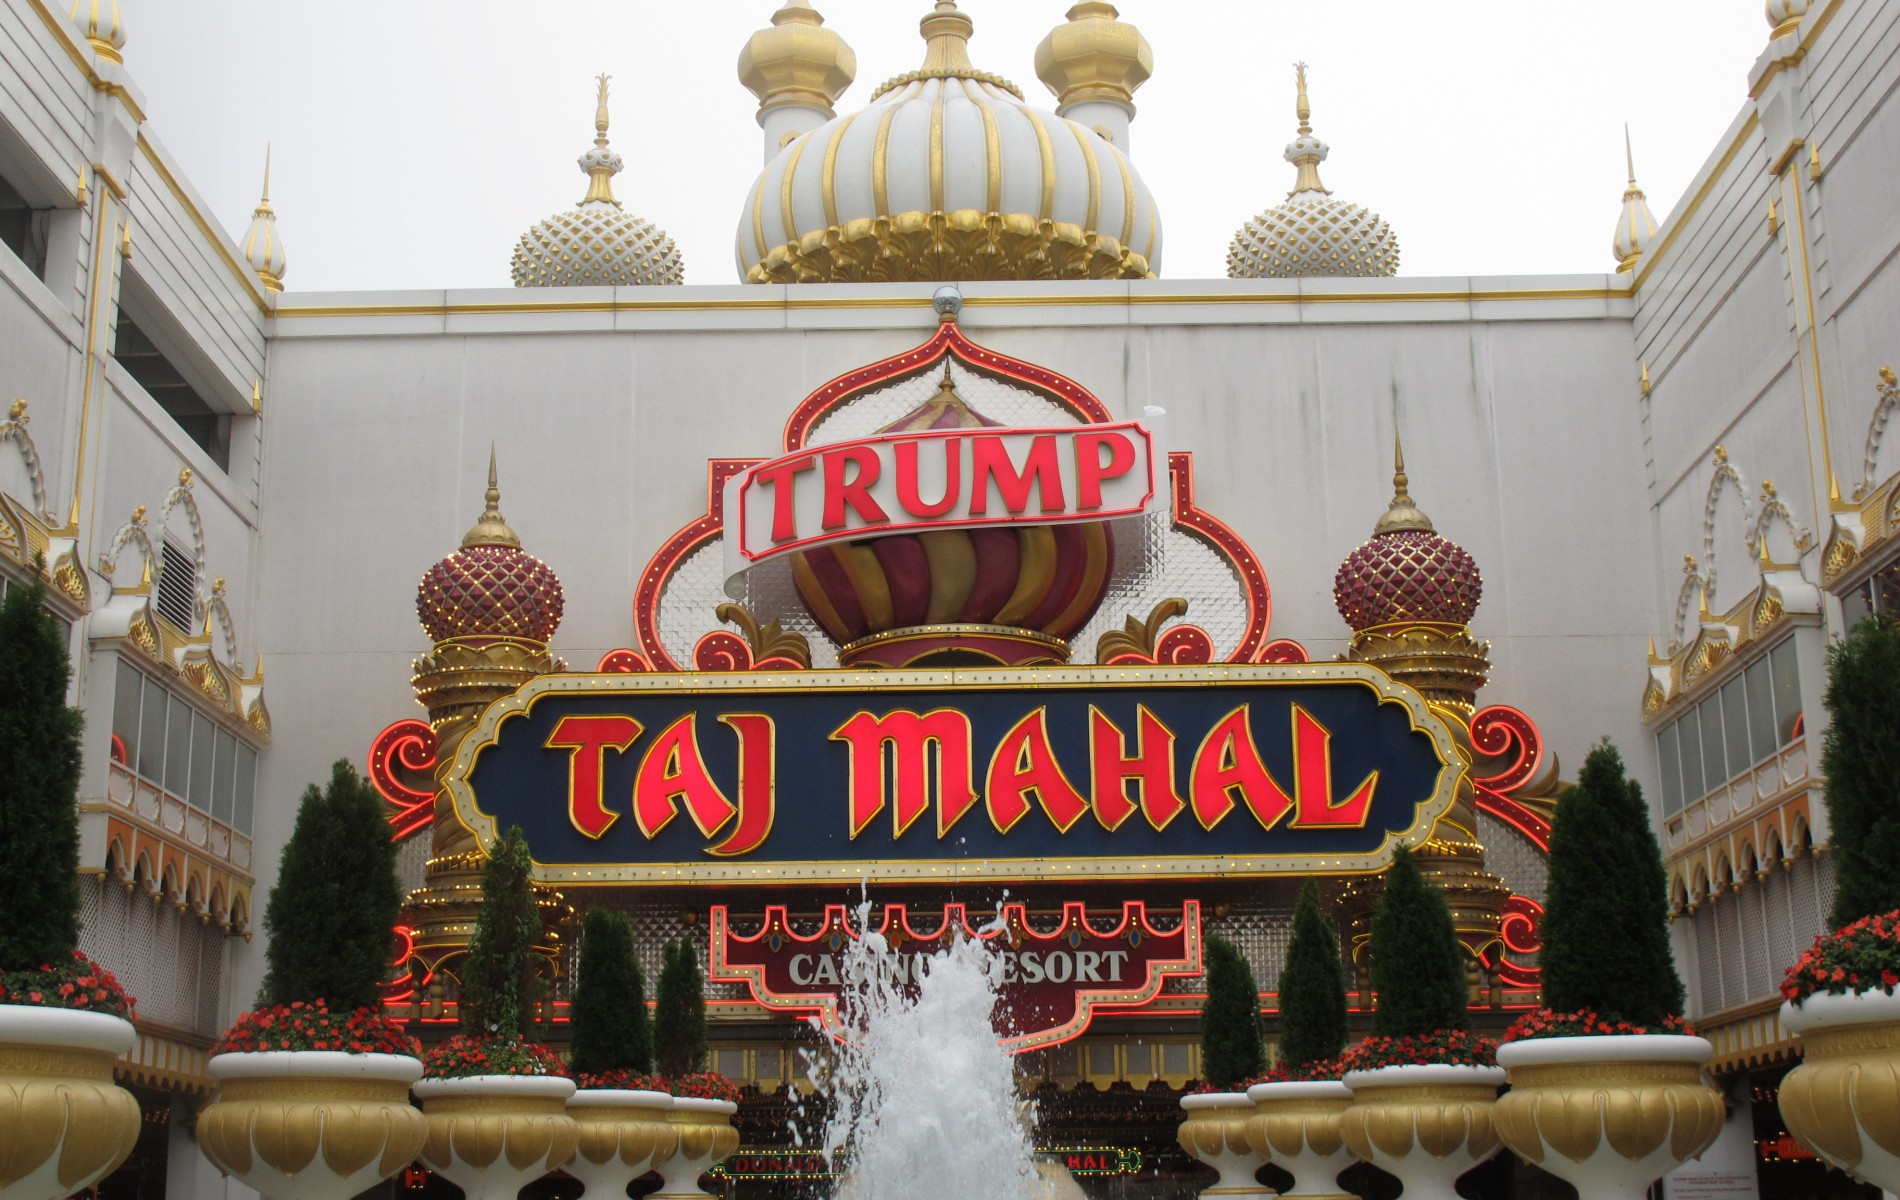 Dc5m United States Mix In English Created At 2017 09 26 1209 Kebab Mangga By Champlo Sf During The 2016 Election Campaign Donald Trump Repeatedly Emphasized That Our Country Was Run Terribly And Needed A Businessman Its Helm